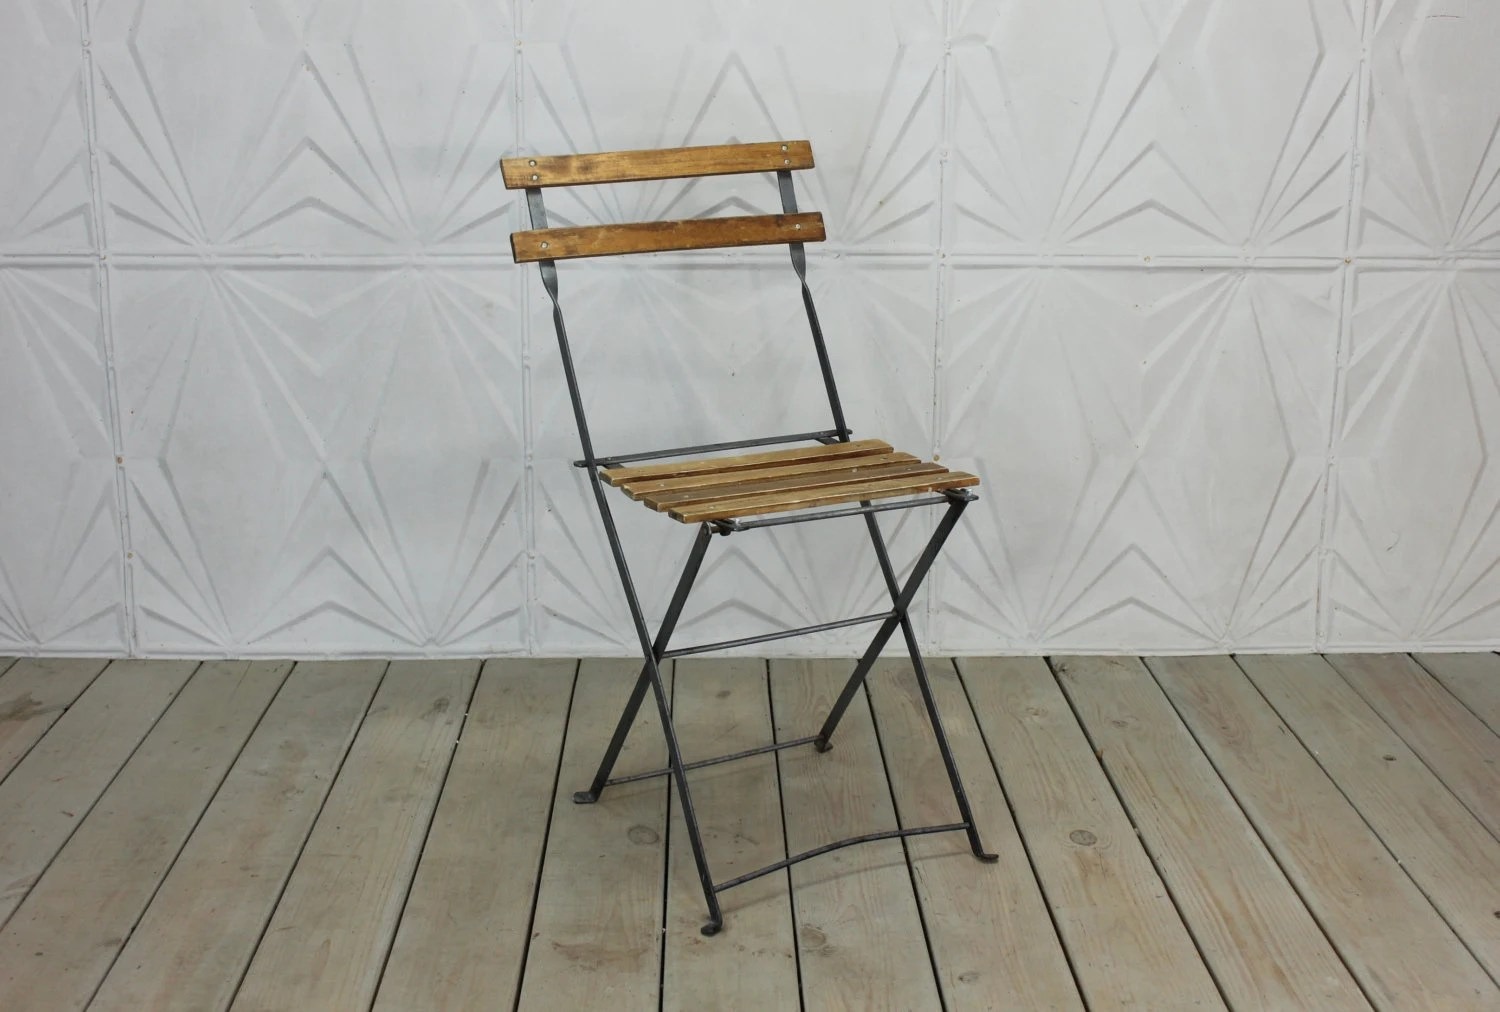 French Bistro Chair Vintage French Bistro Chair Folding Wood Metal Side Rustic